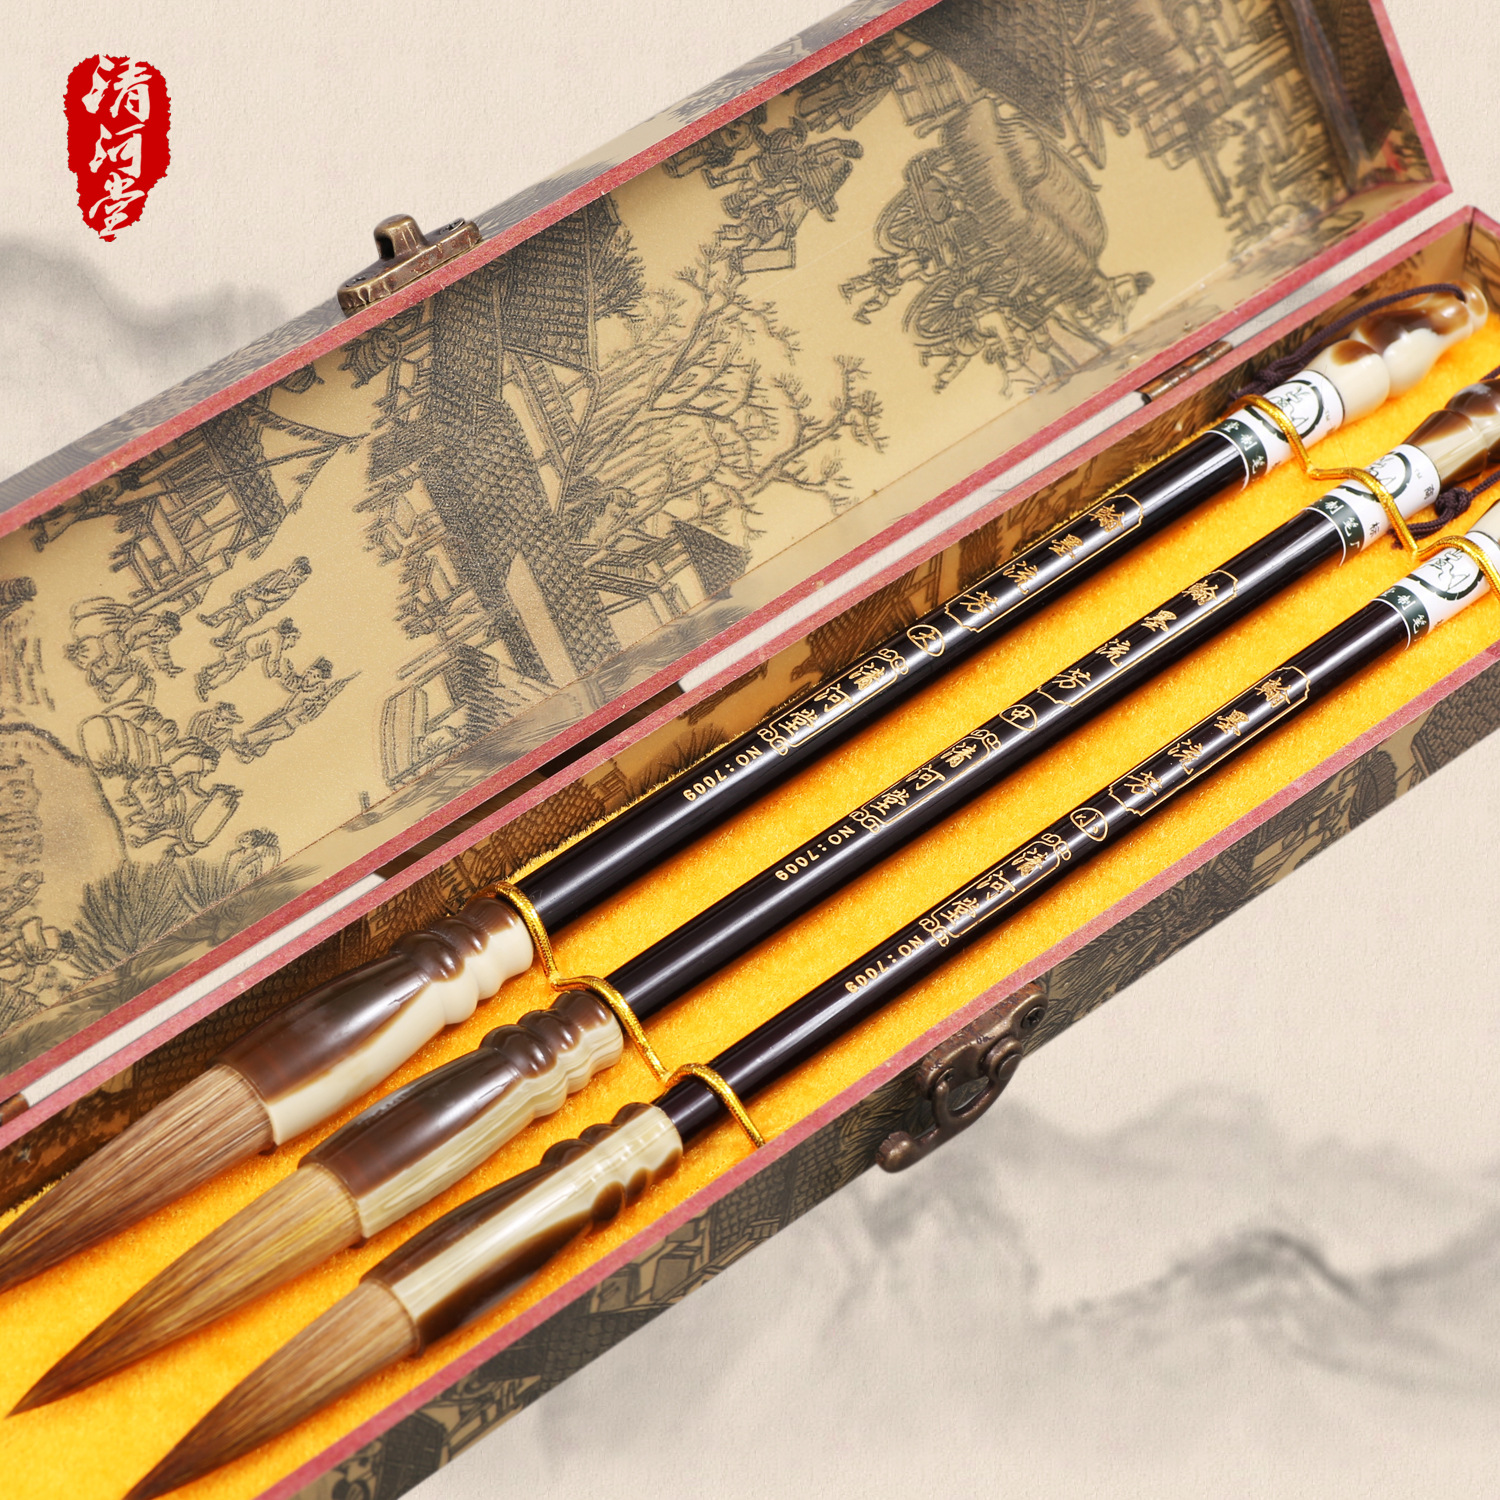 Four treasures of the study of painting brush set calligraphy liufang wood paint brush LangHao suit the art treasures from mosсow museums